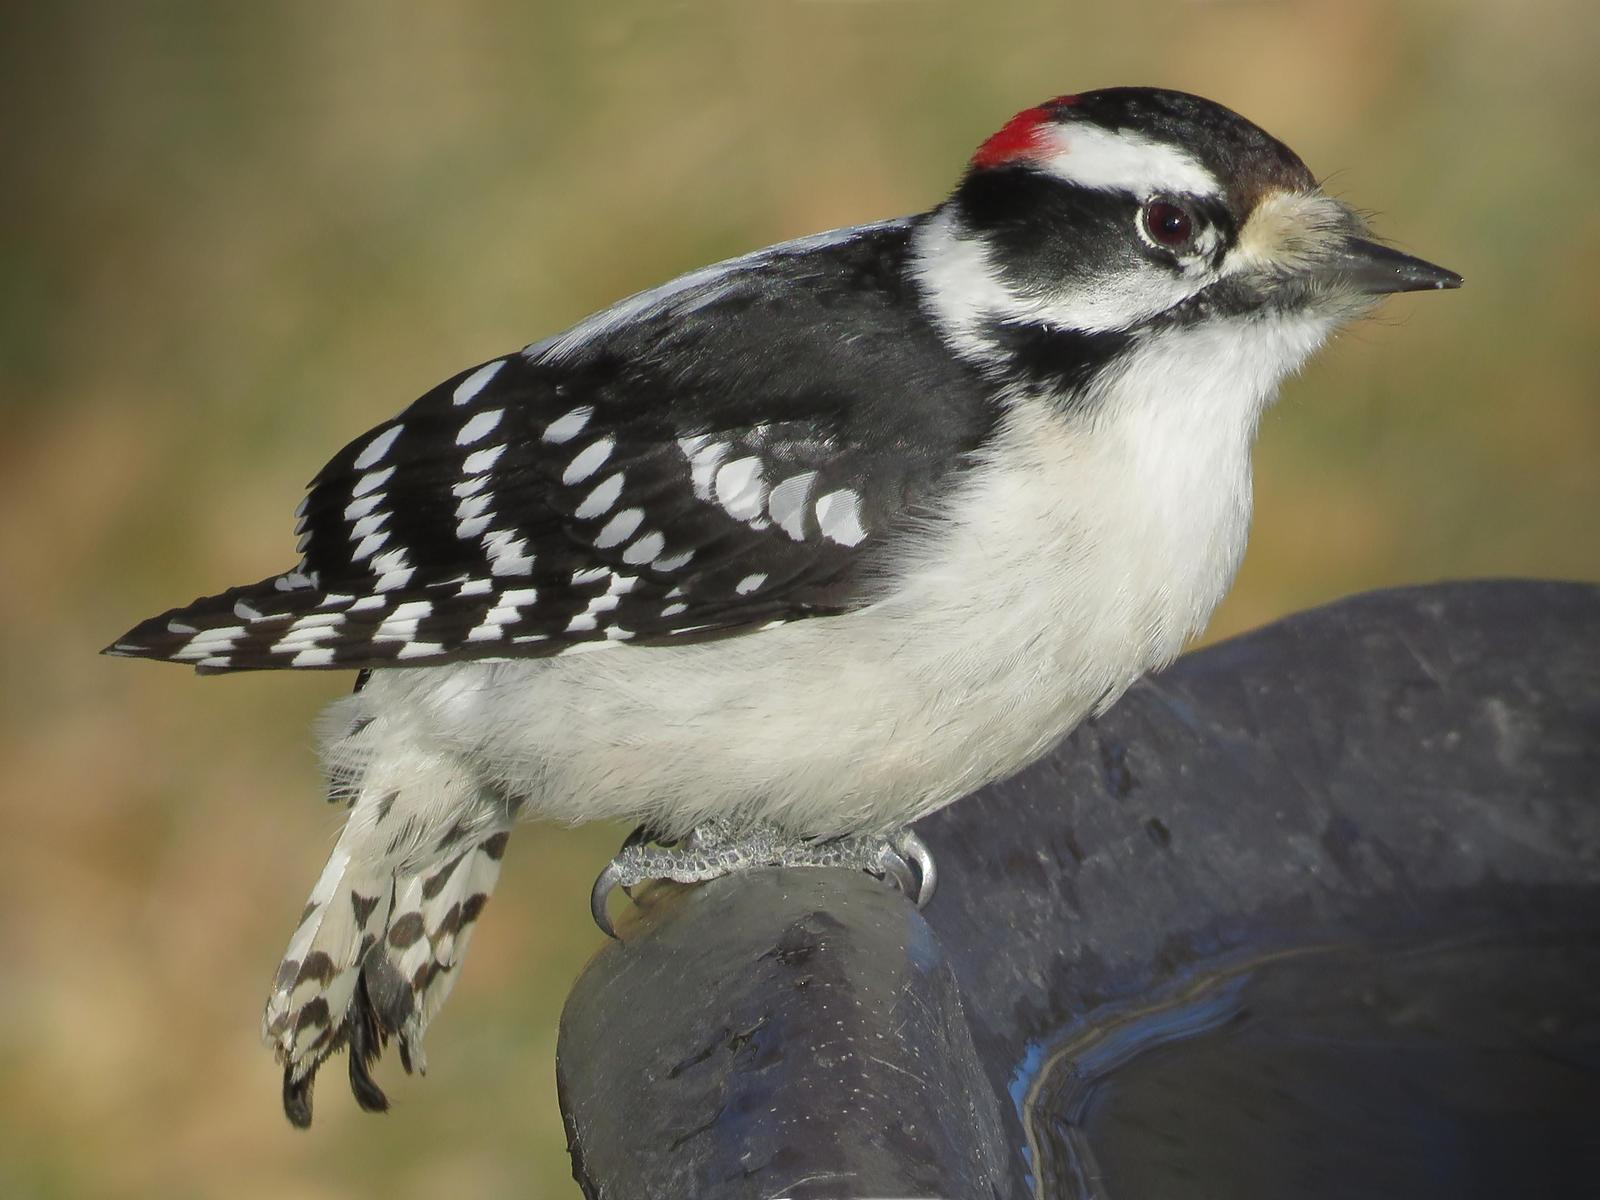 Downy Woodpecker Photo by Bob Neugebauer